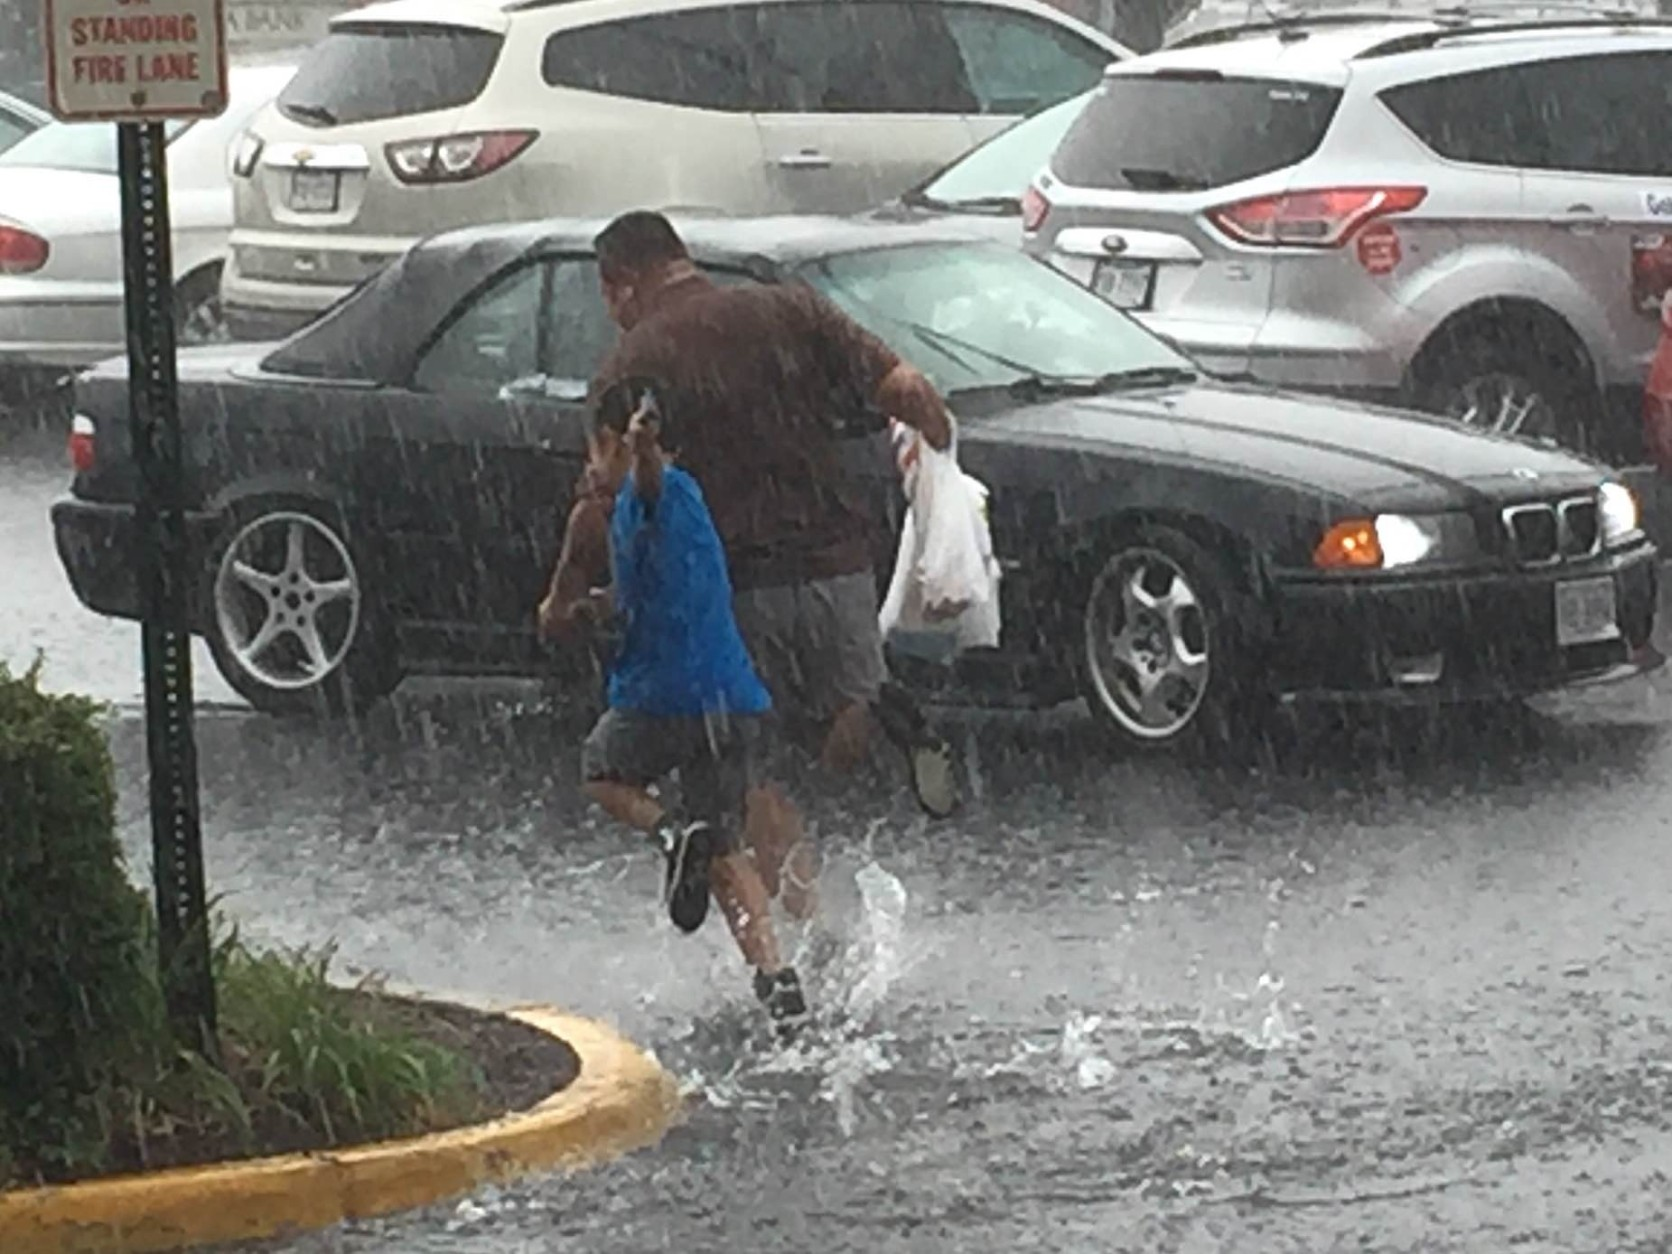 People run to their vehicles in Falls Church, Virginia during storms on June 21, 2016. (Courtesy Larry Rubenstein)